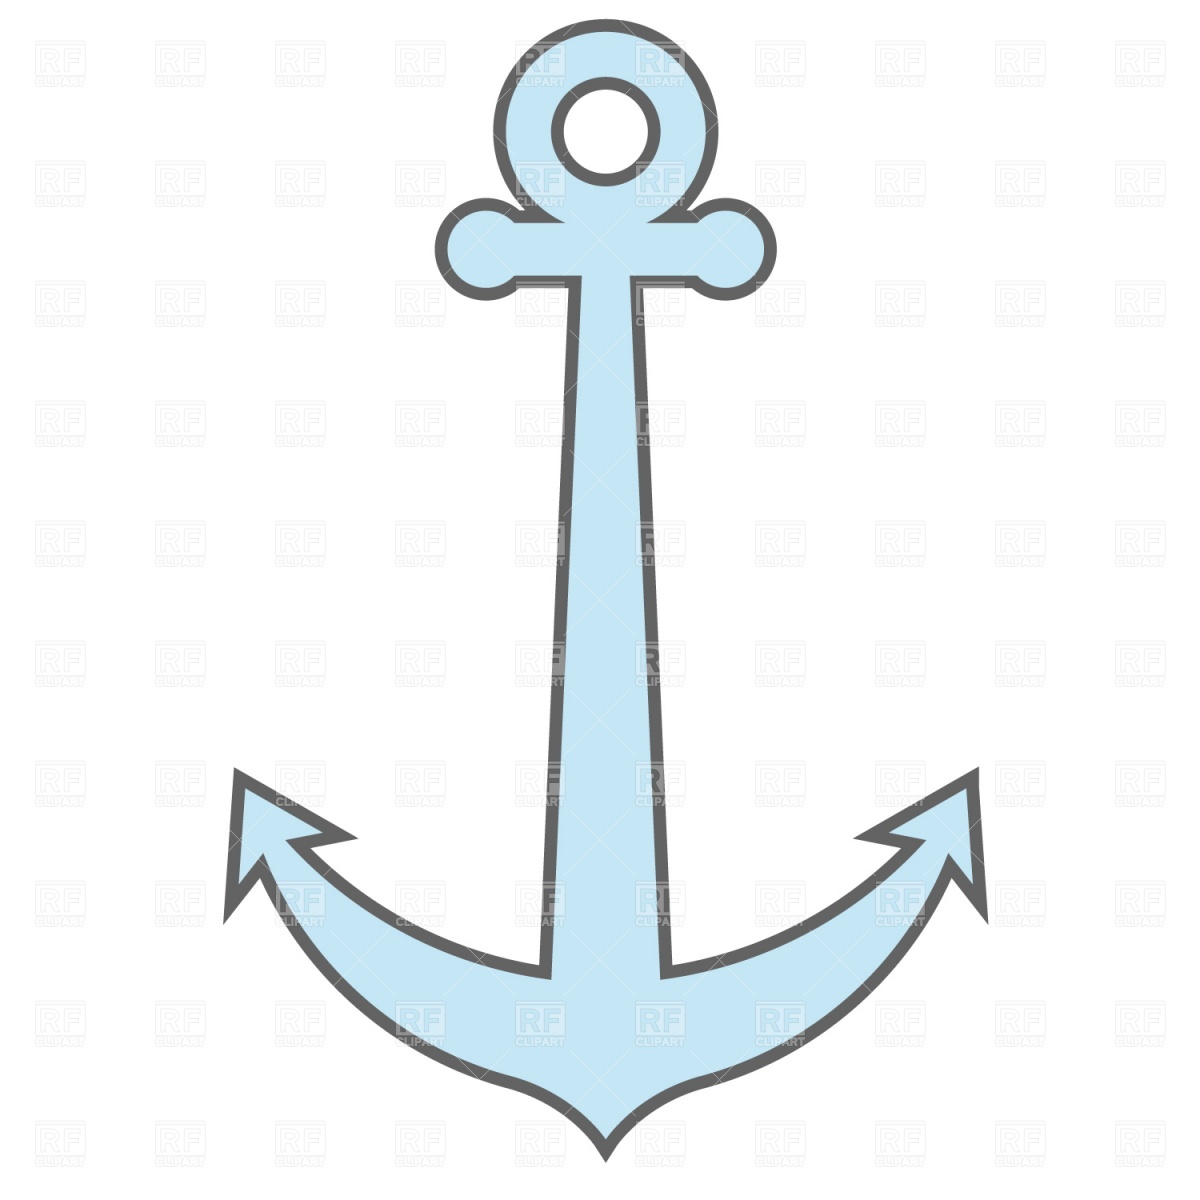 Free pictures of boat. Clipart anchor public domain